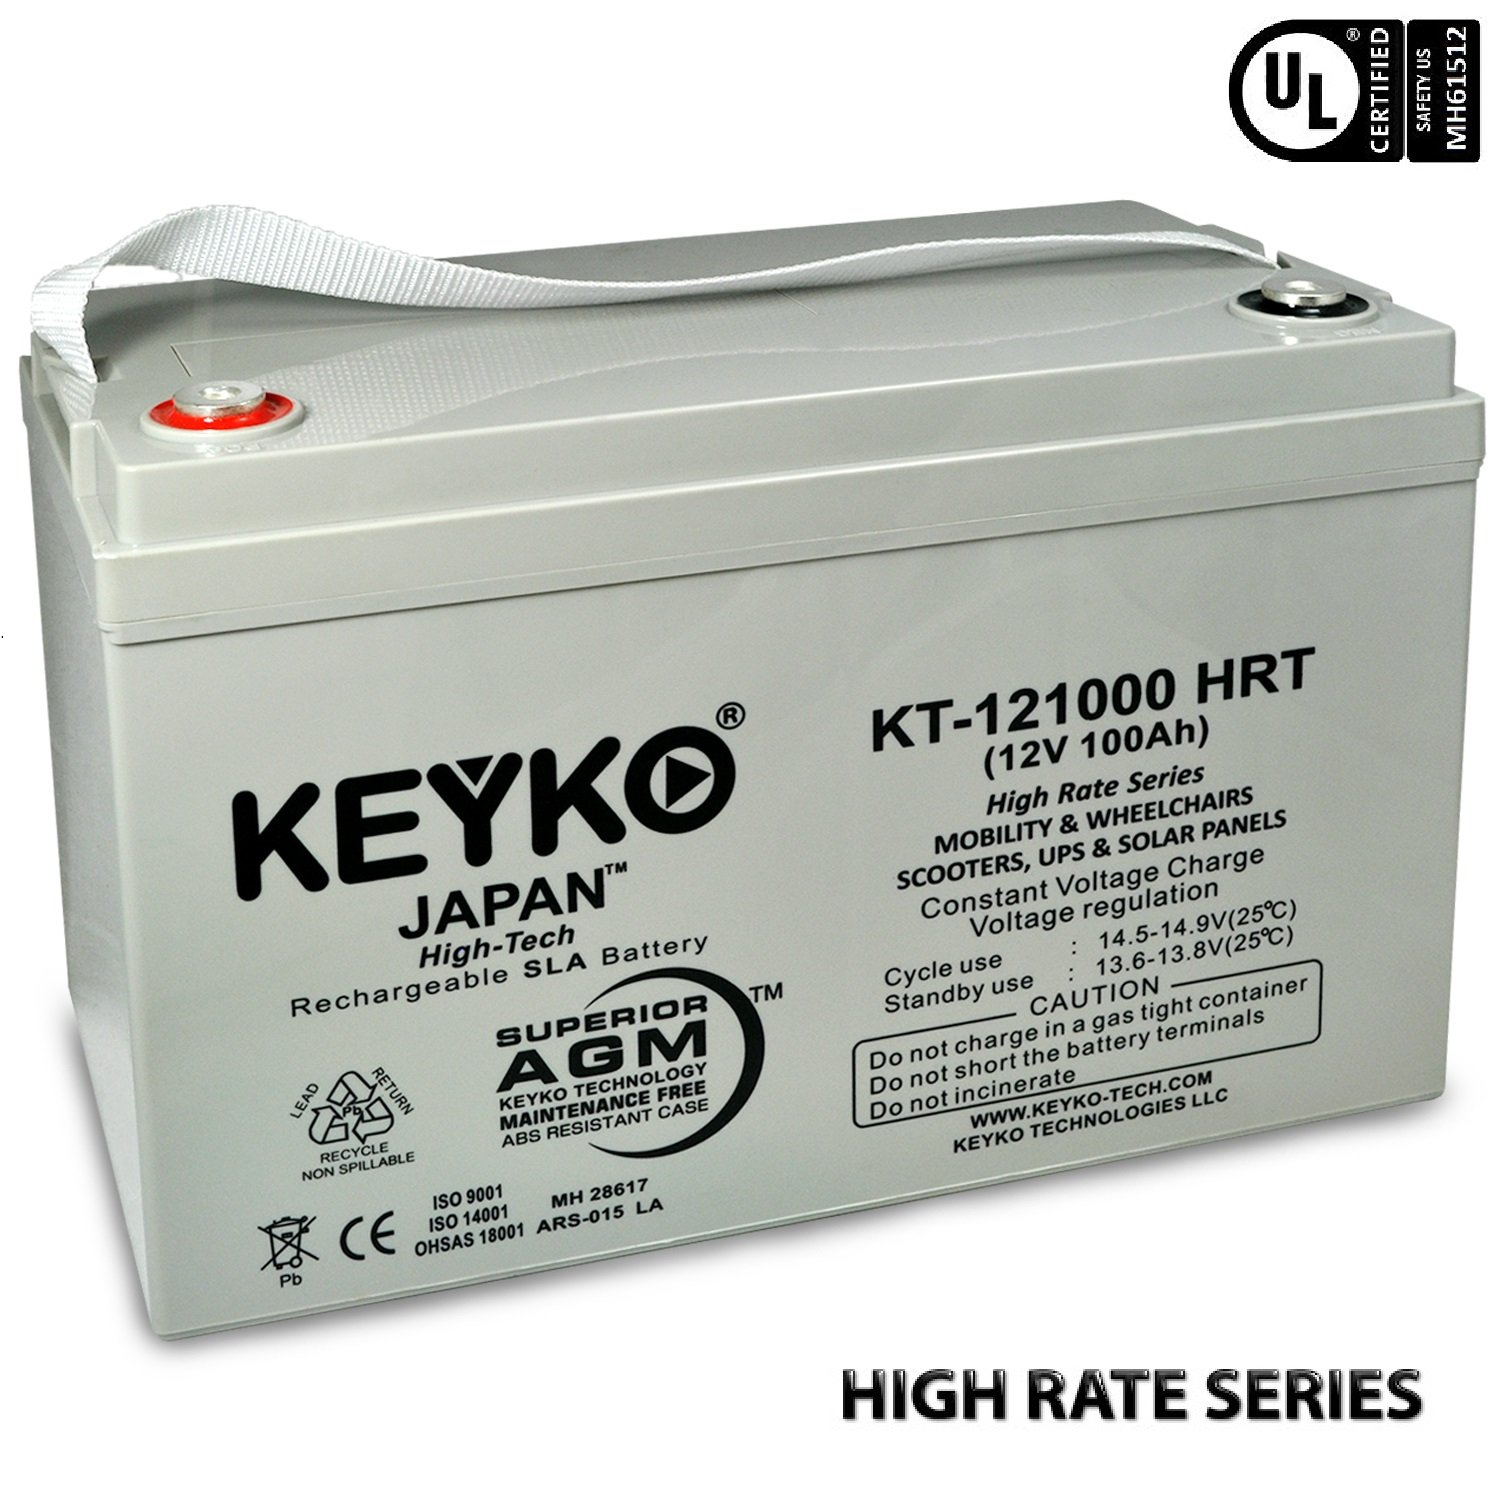 SUNPOWER PV Solar Panels 12V 100Ah Real 100 Amp AGM / SLA Deep Cycle Battery for Solar Winds Inverters Generators Genuine KEYKO - IT Terminal - T3 by KEYKO